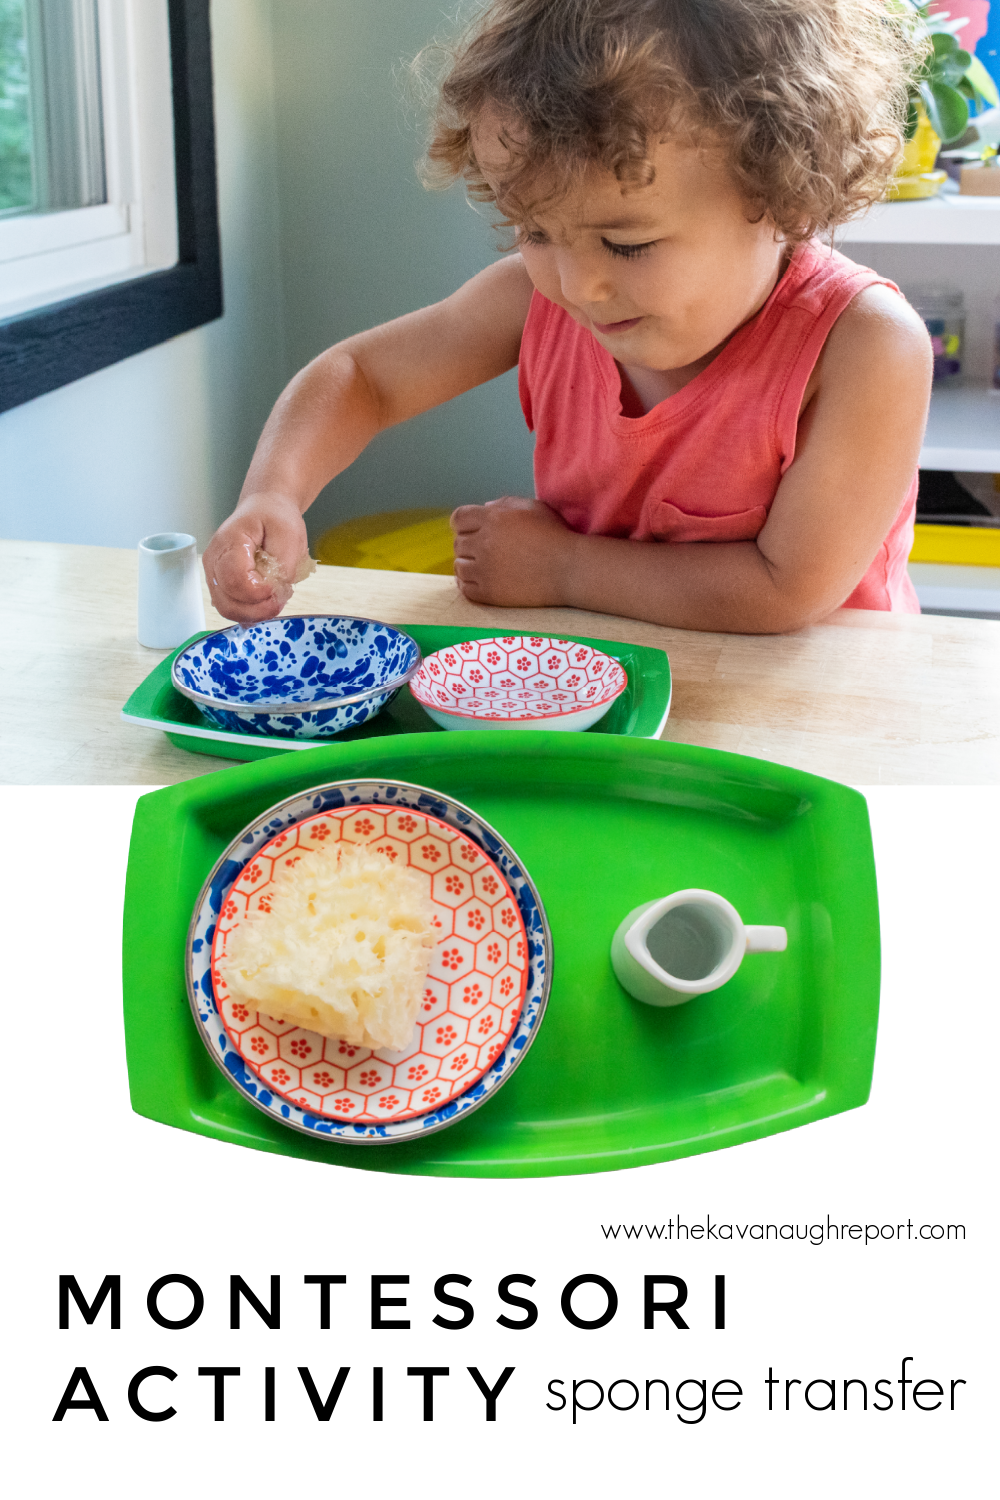 Sponge transferring is an easy, indoor, toddler activity that you can set up at home to work on fine motor skills and sequencing.